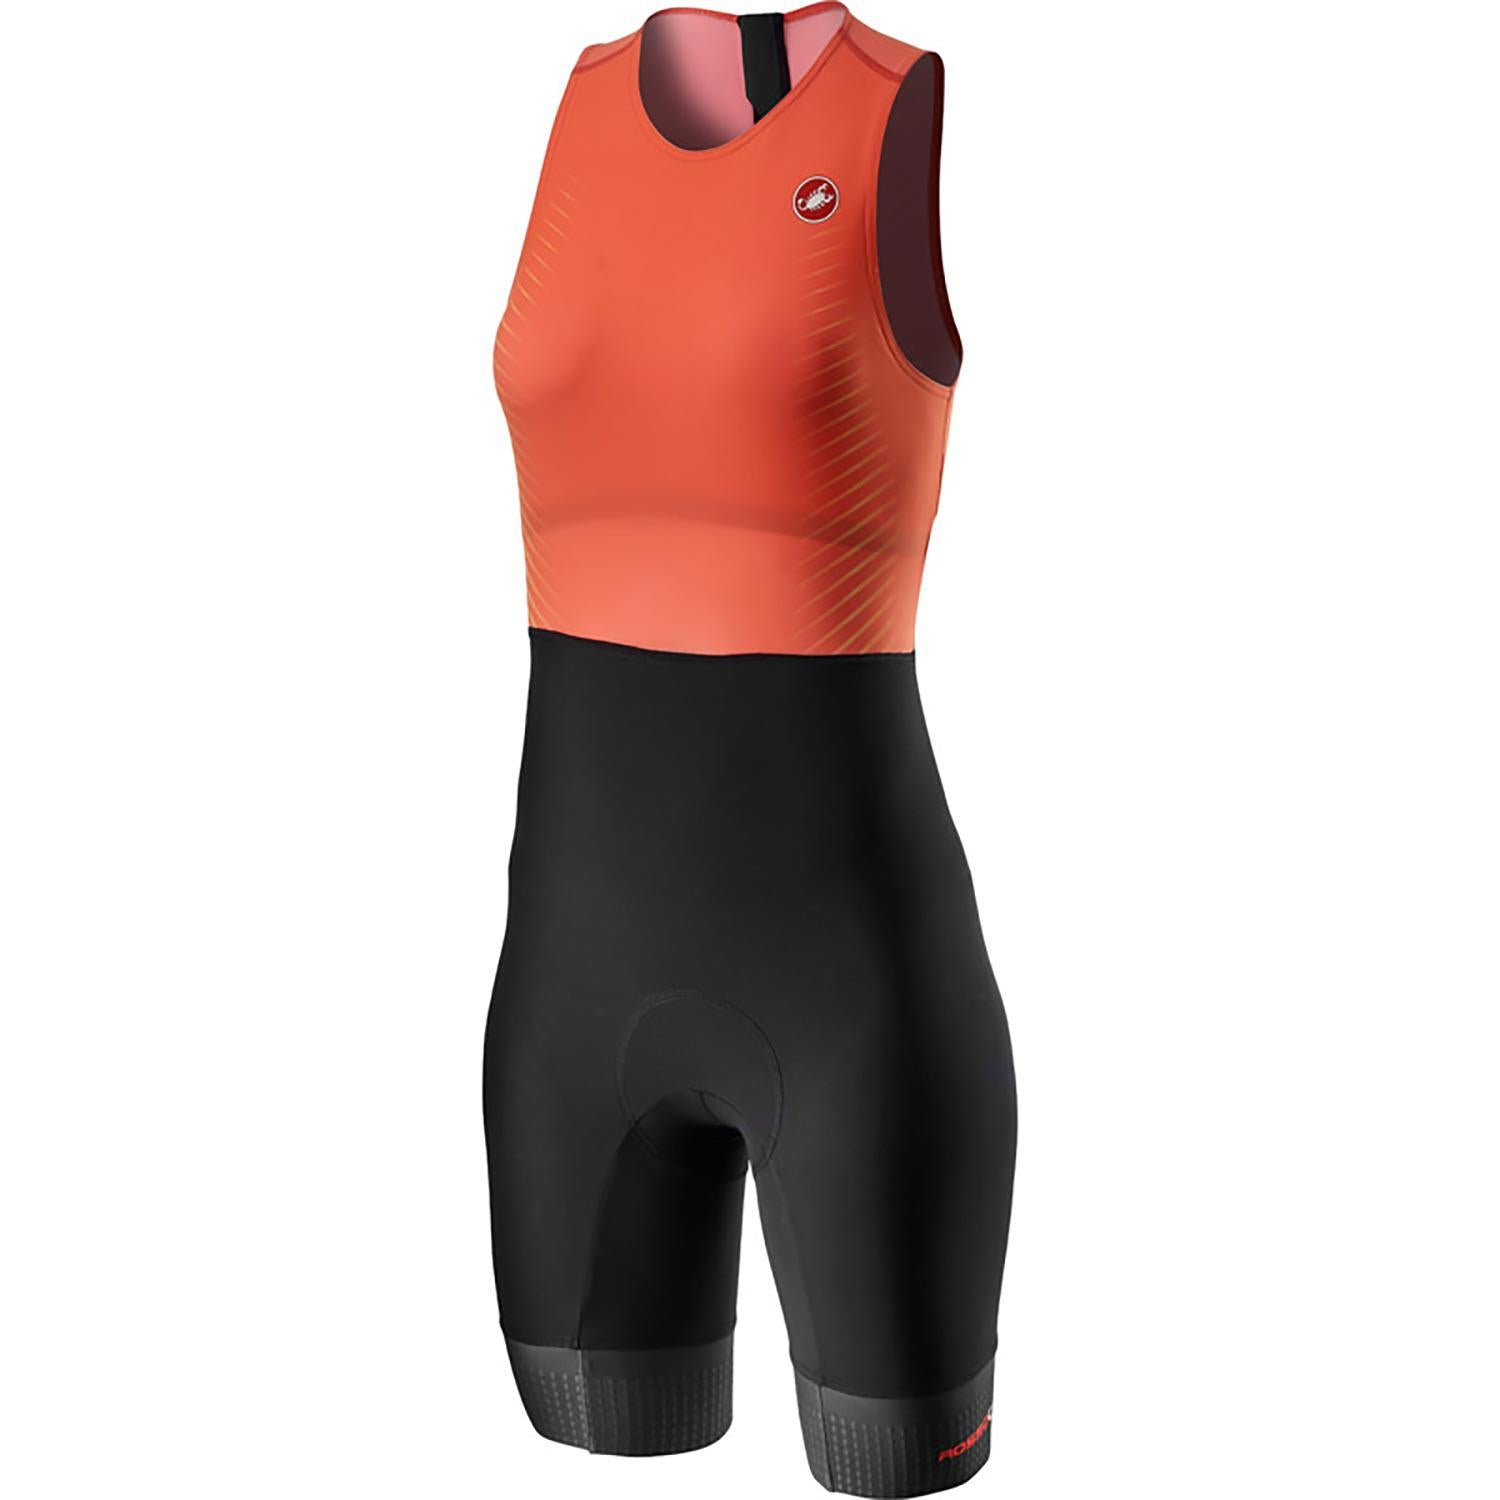 Castelli-Castelli SD Team Women's Race Suit-Brilliant Pink-XS-CS211152881-saddleback-elite-performance-cycling